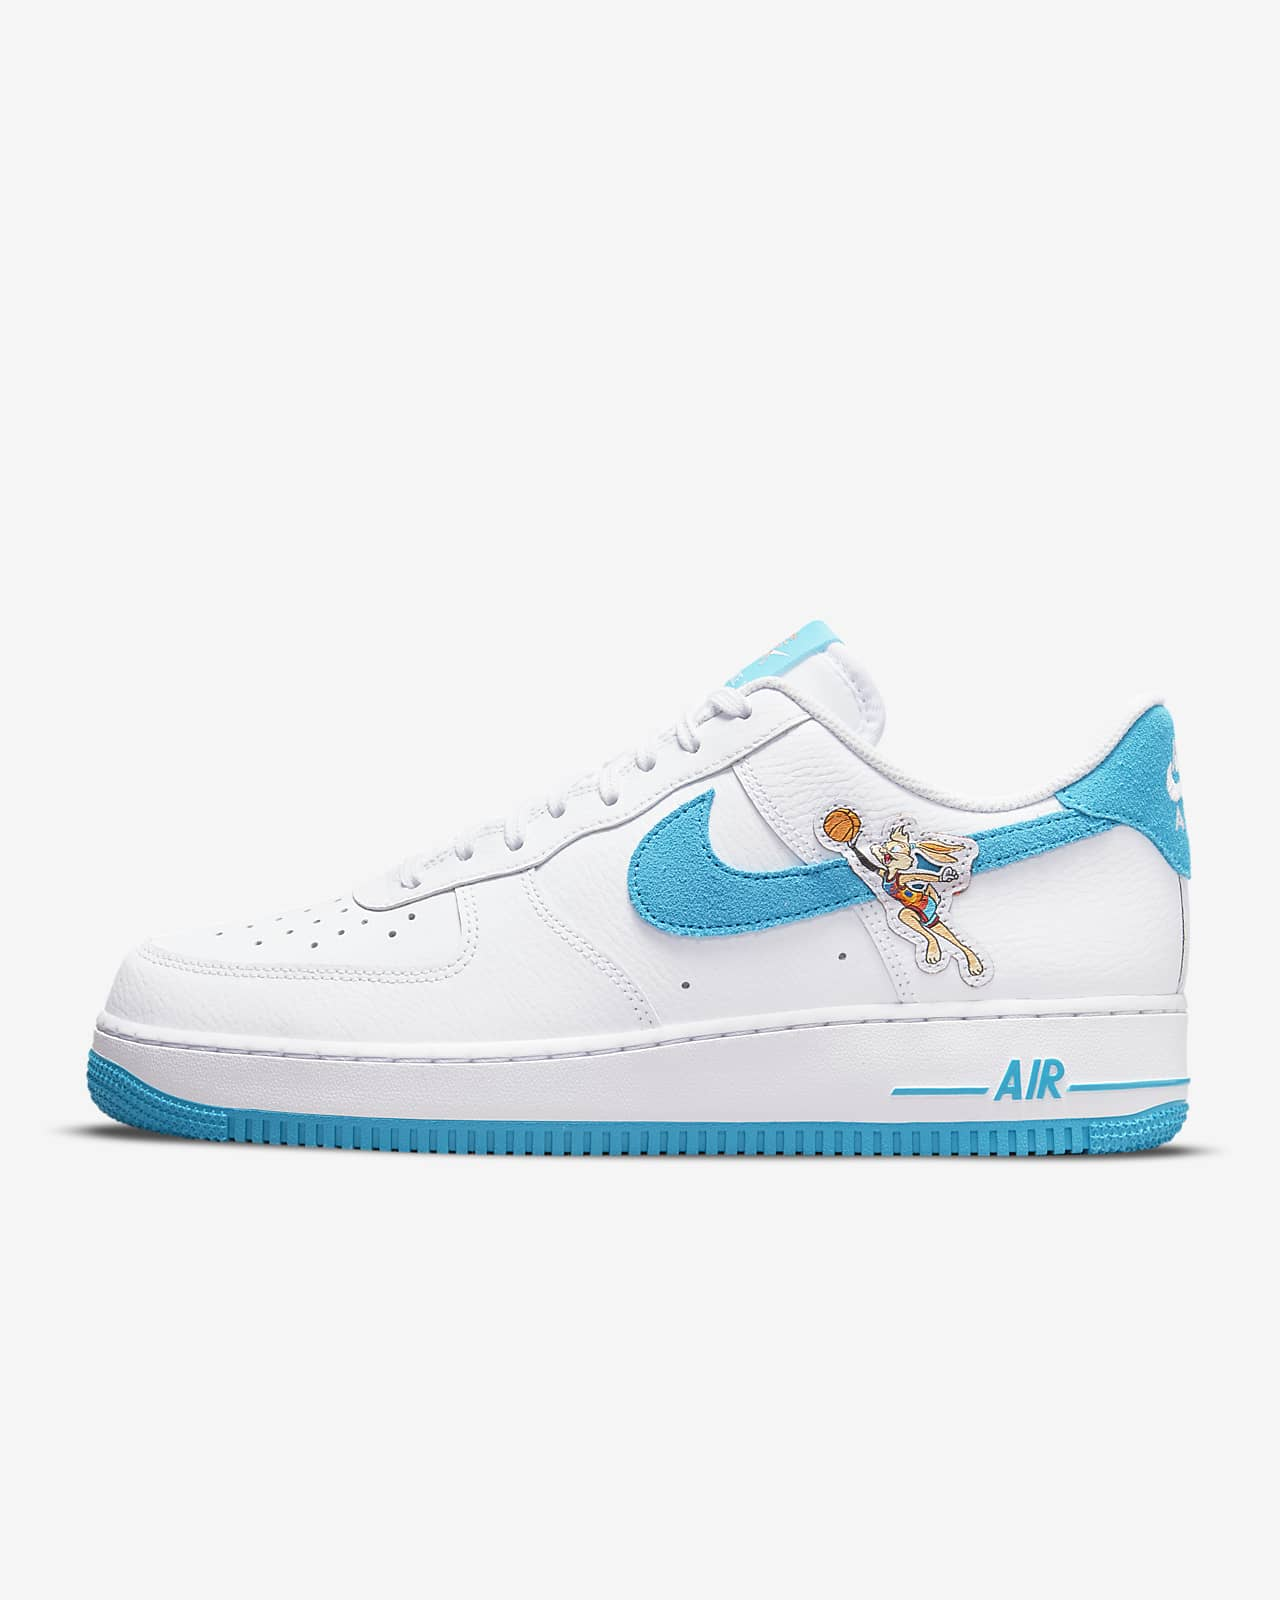 Nike Air Force 1 '07 x Space Jam: A Legacy Men's Shoes